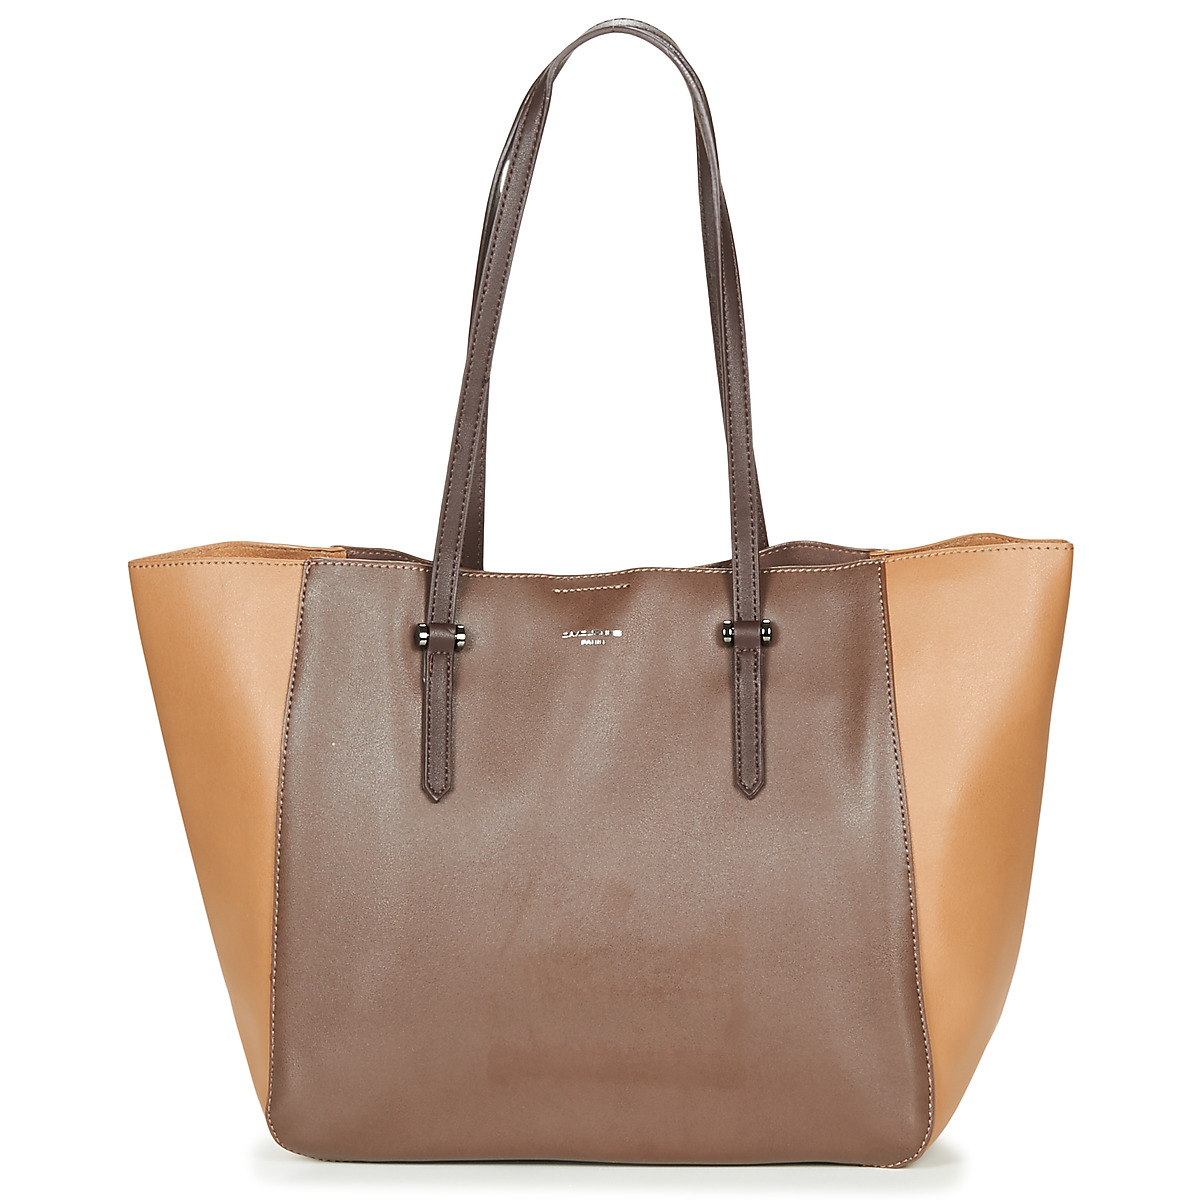 Borsa a spalla donna David Jones  -  Marrone